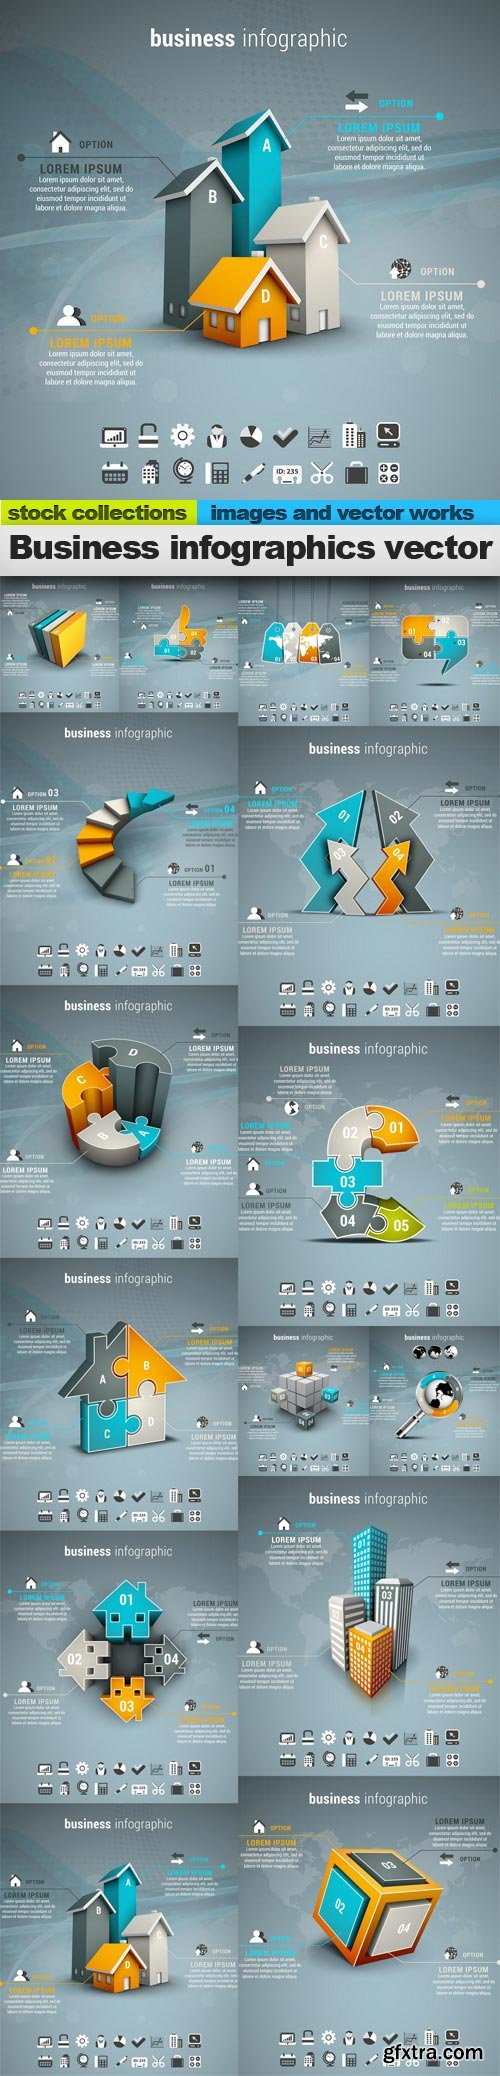 Business infographics vector, 15 x EPS